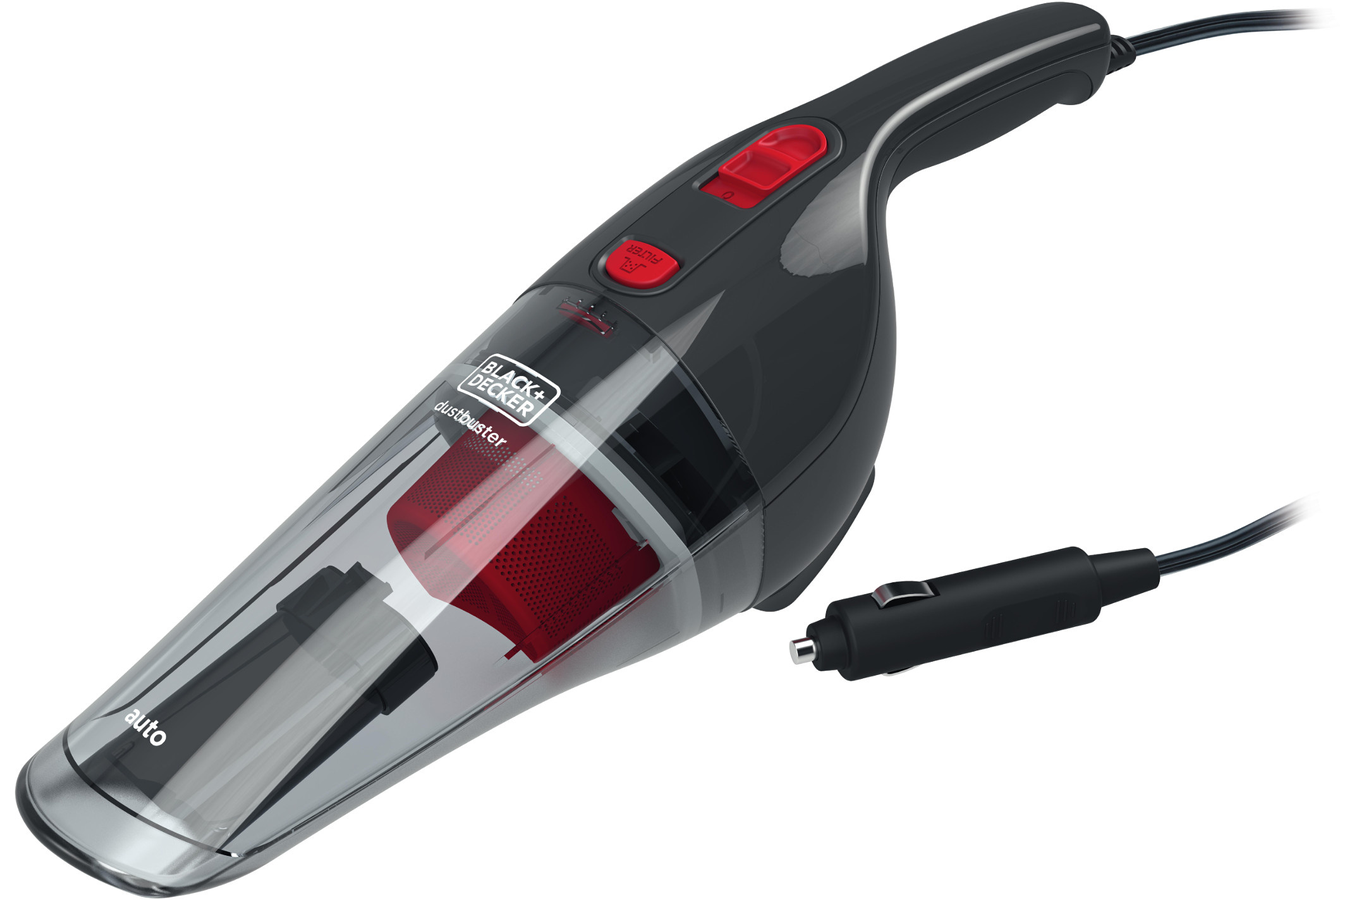 aspirateur main black decker dustbuster auto nv 1200av 4199863 darty. Black Bedroom Furniture Sets. Home Design Ideas